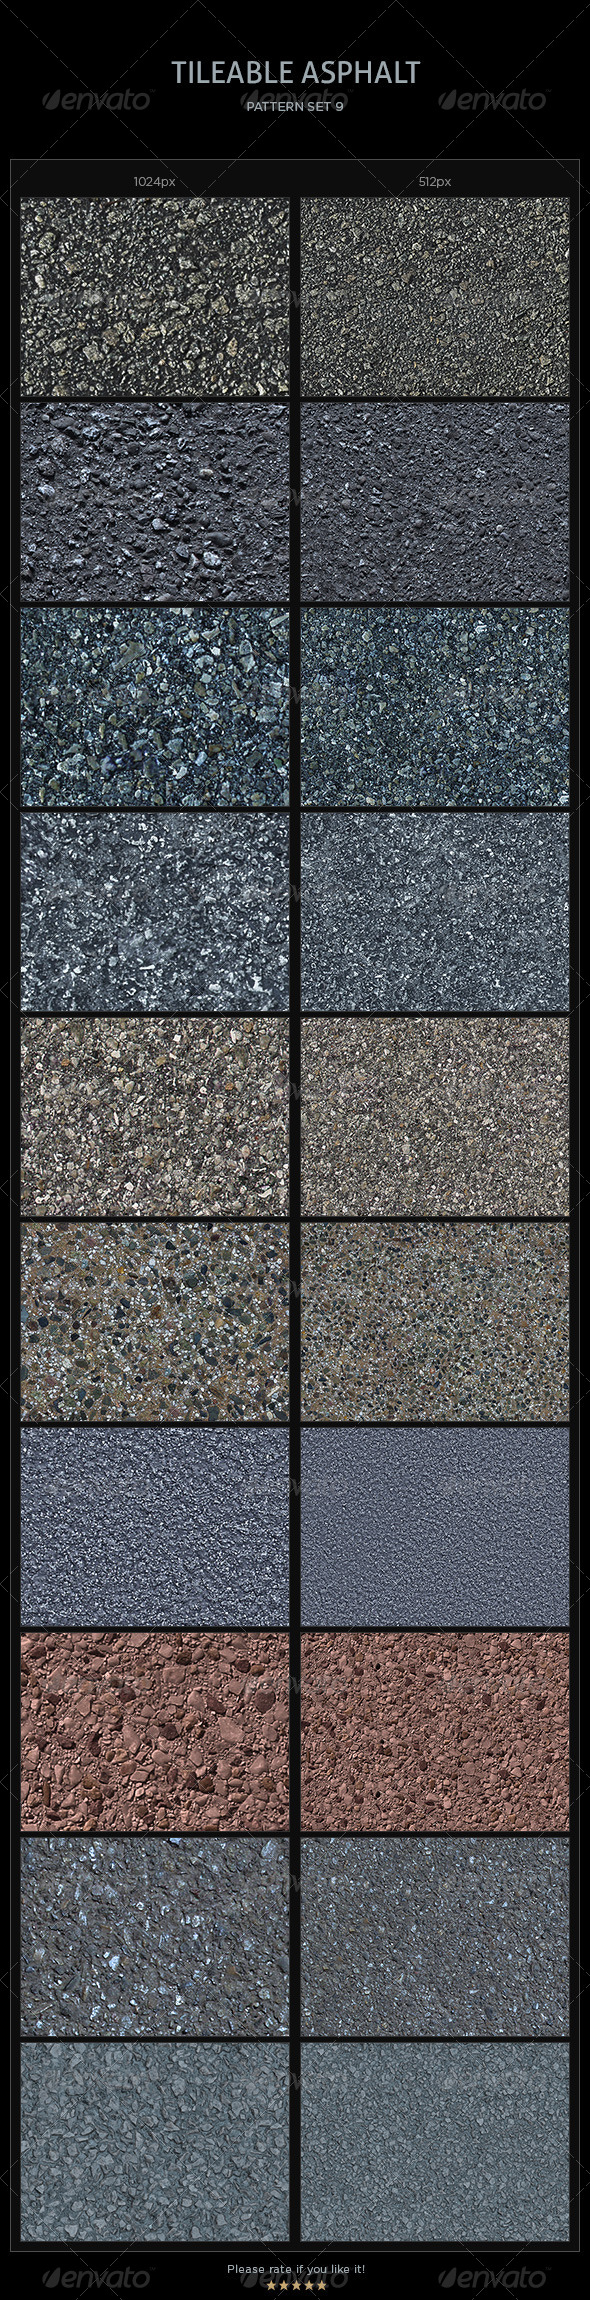 10 Tileable Asphalt Textures/Patterns - Miscellaneous Textures / Fills / Patterns